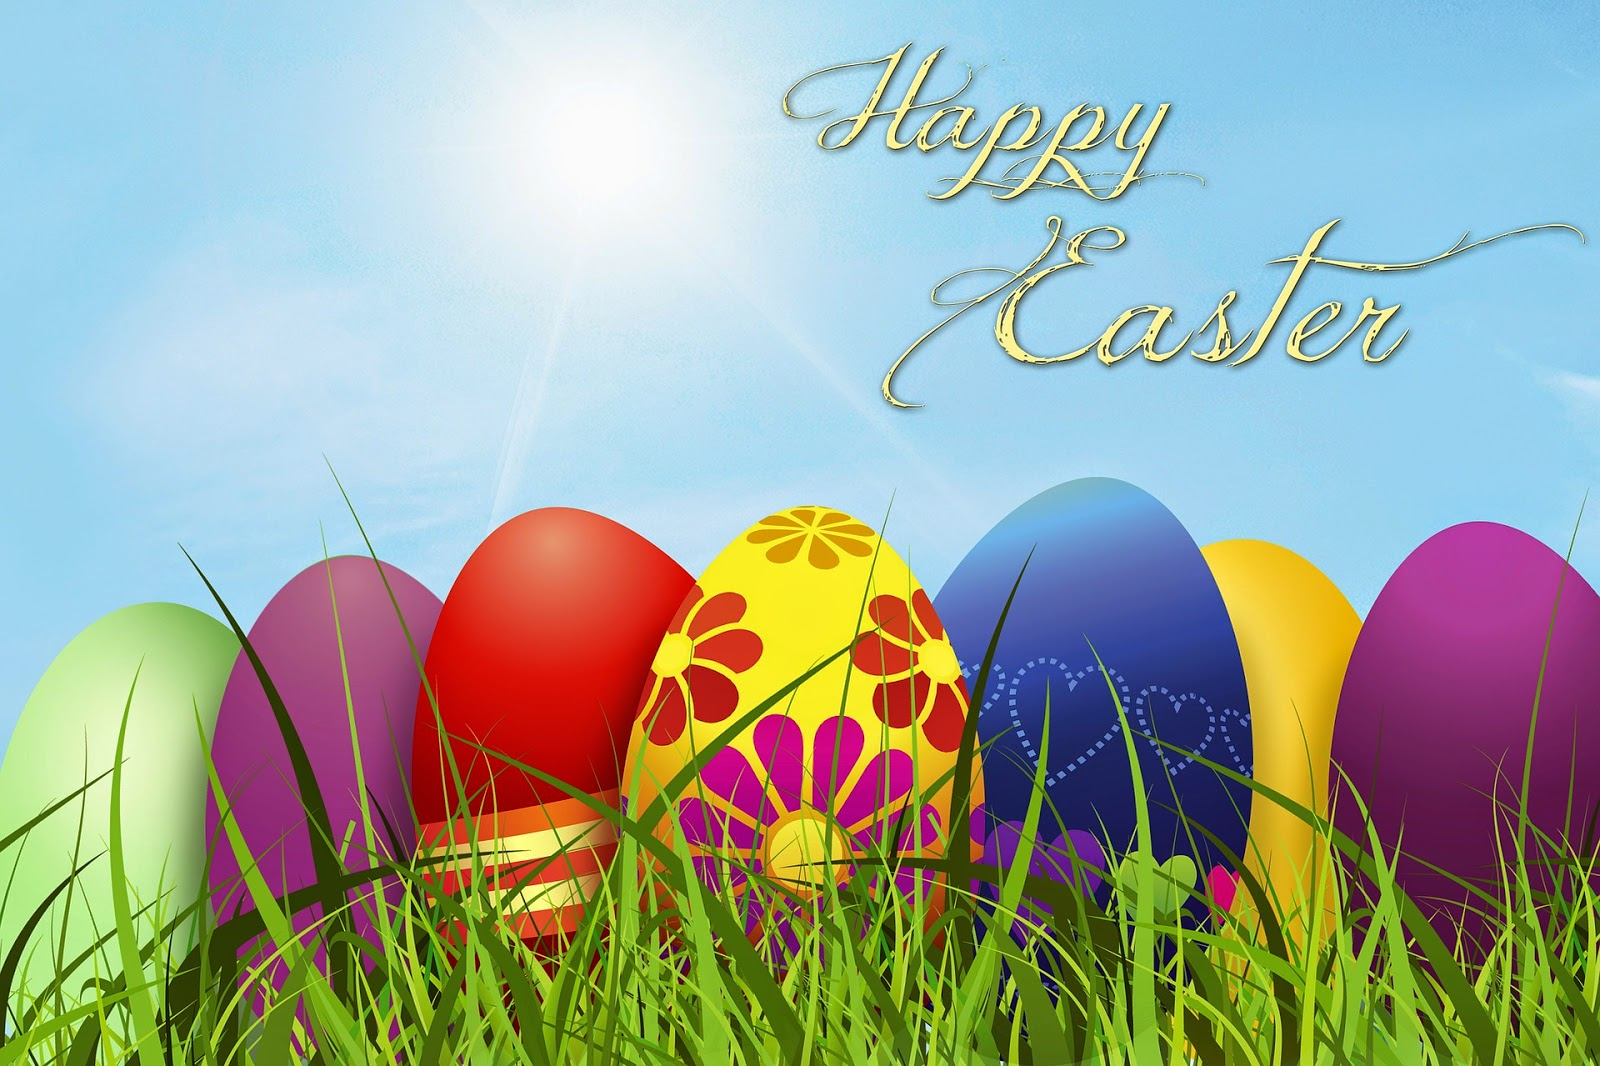 Digital photo Happy Easter jpg screen saver desktop wallpaper Easter ecard